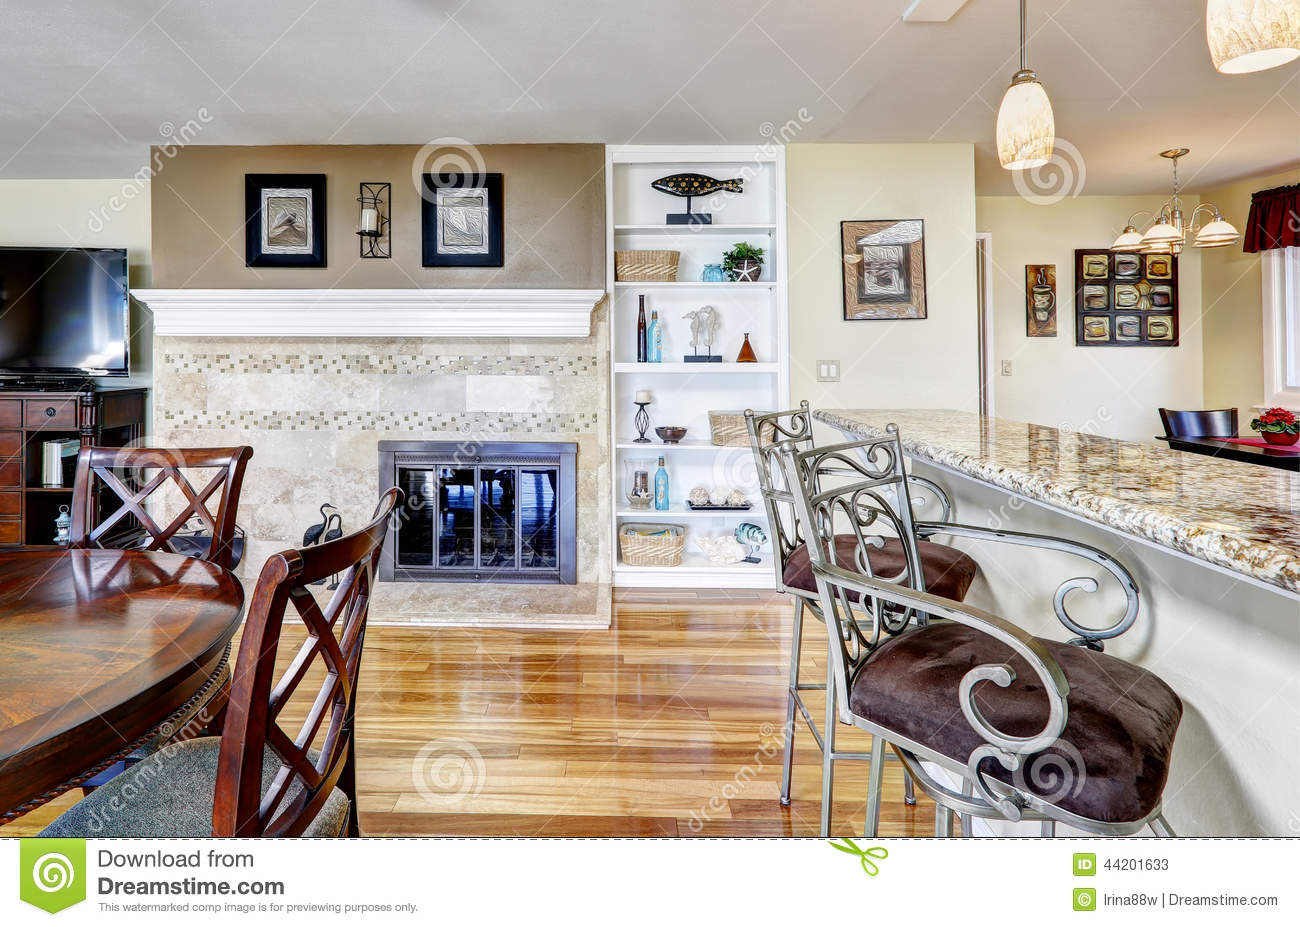 Keuken Restaurant Vies Kitchen With Fireplace And Dining Table Stock Image